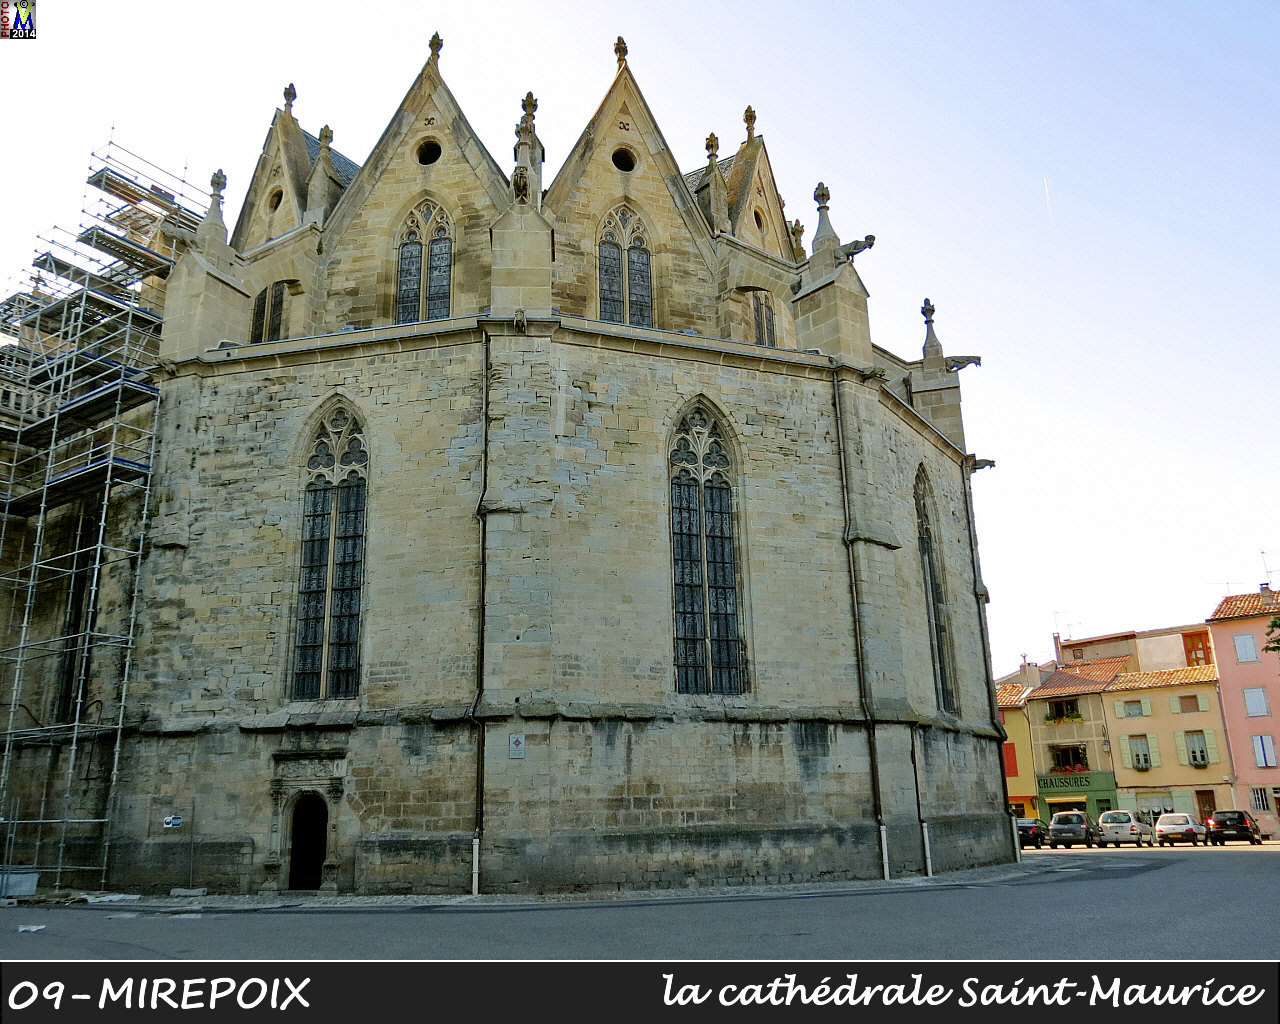 09MIREPOIX_cathedrale_106.jpg